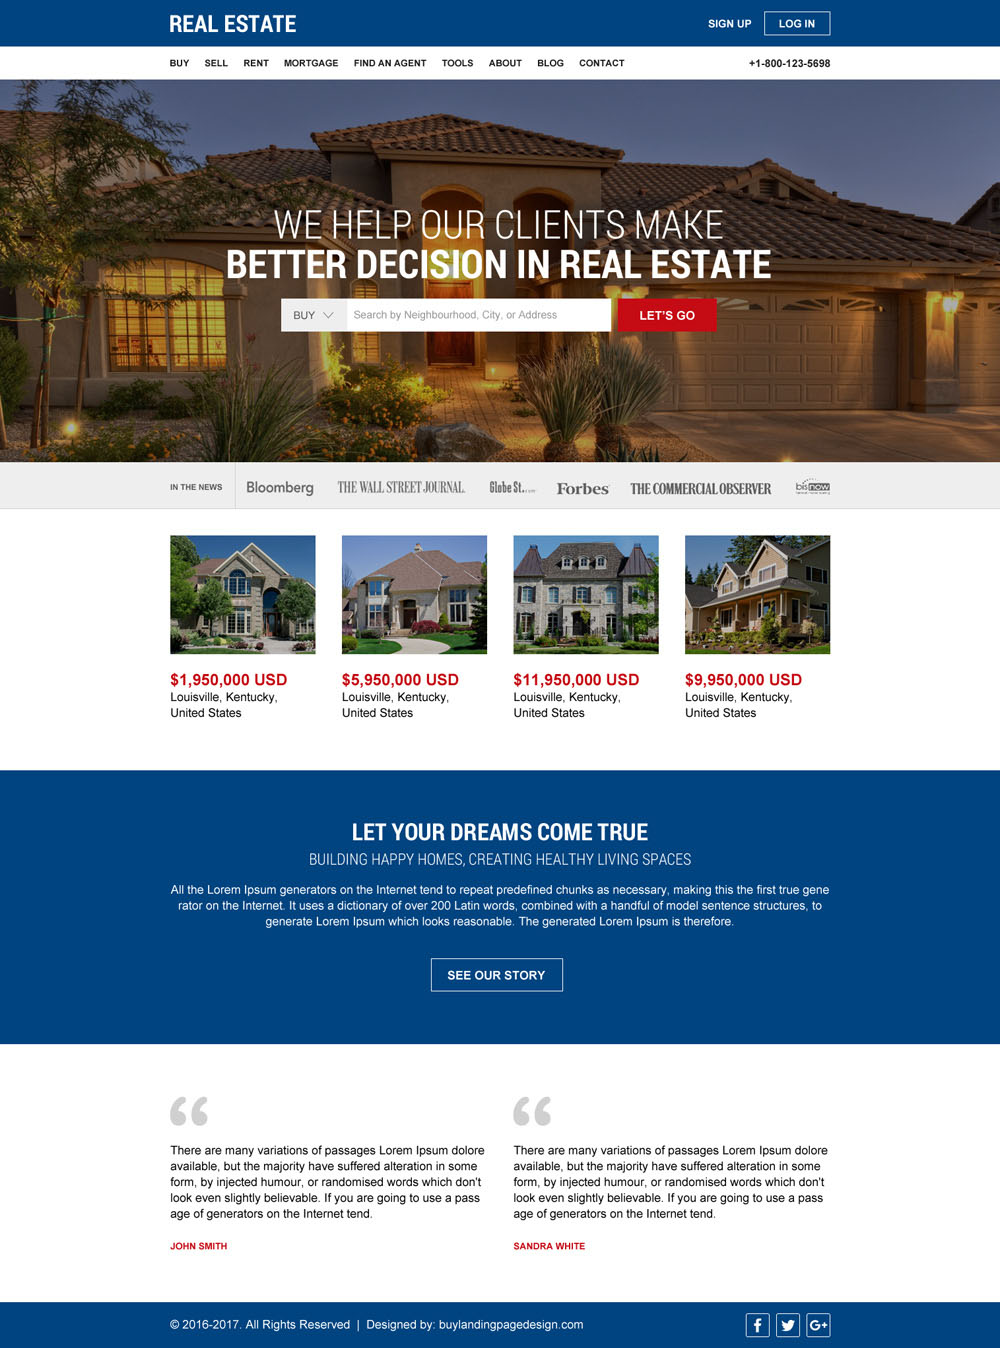 best-real-estate-html-website-template-to-create-your-real-estate-website-002